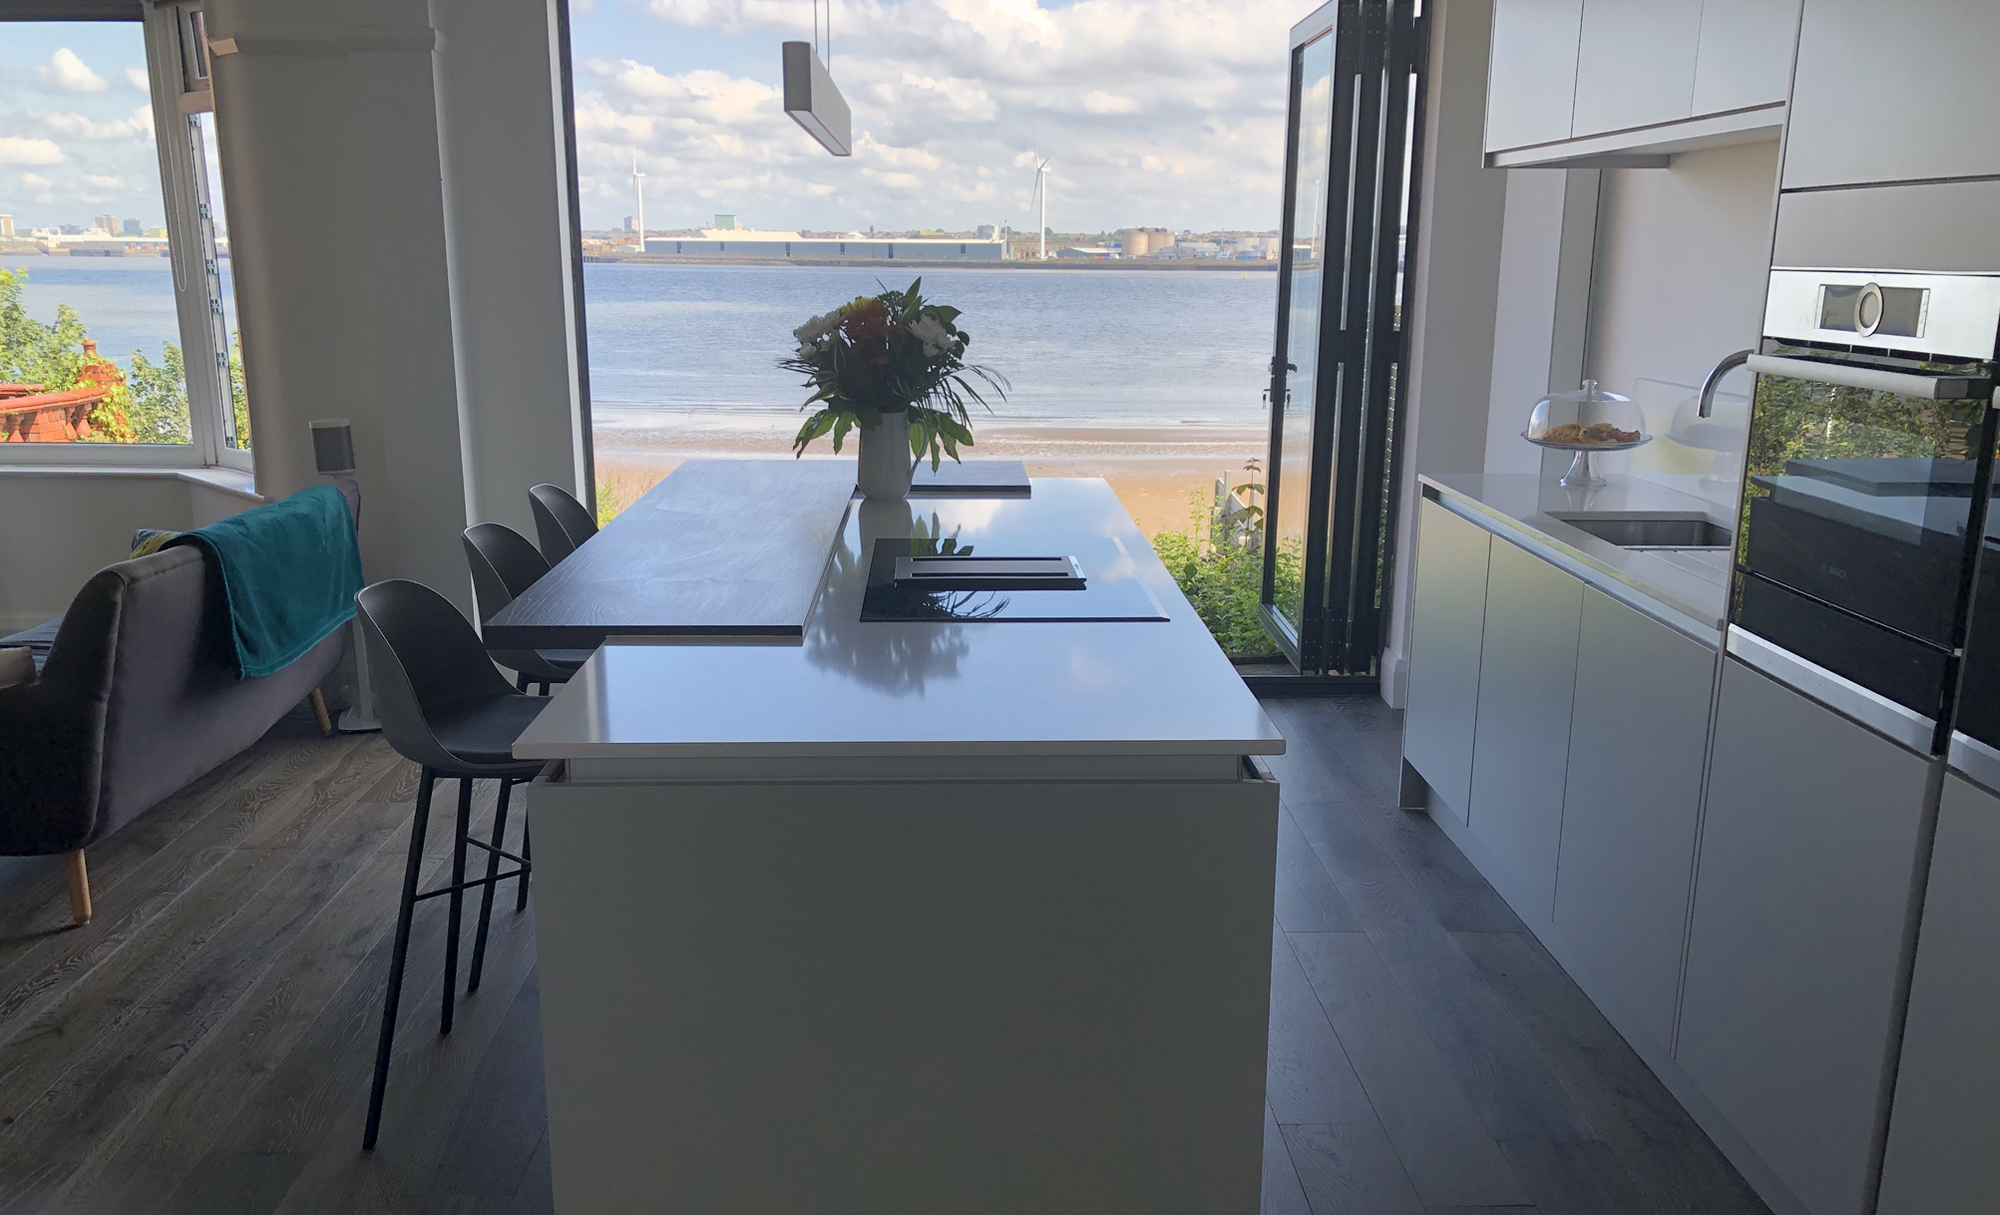 Zola Matte Kitchen by Mill Town Kitchens in Liverpool Backdrop